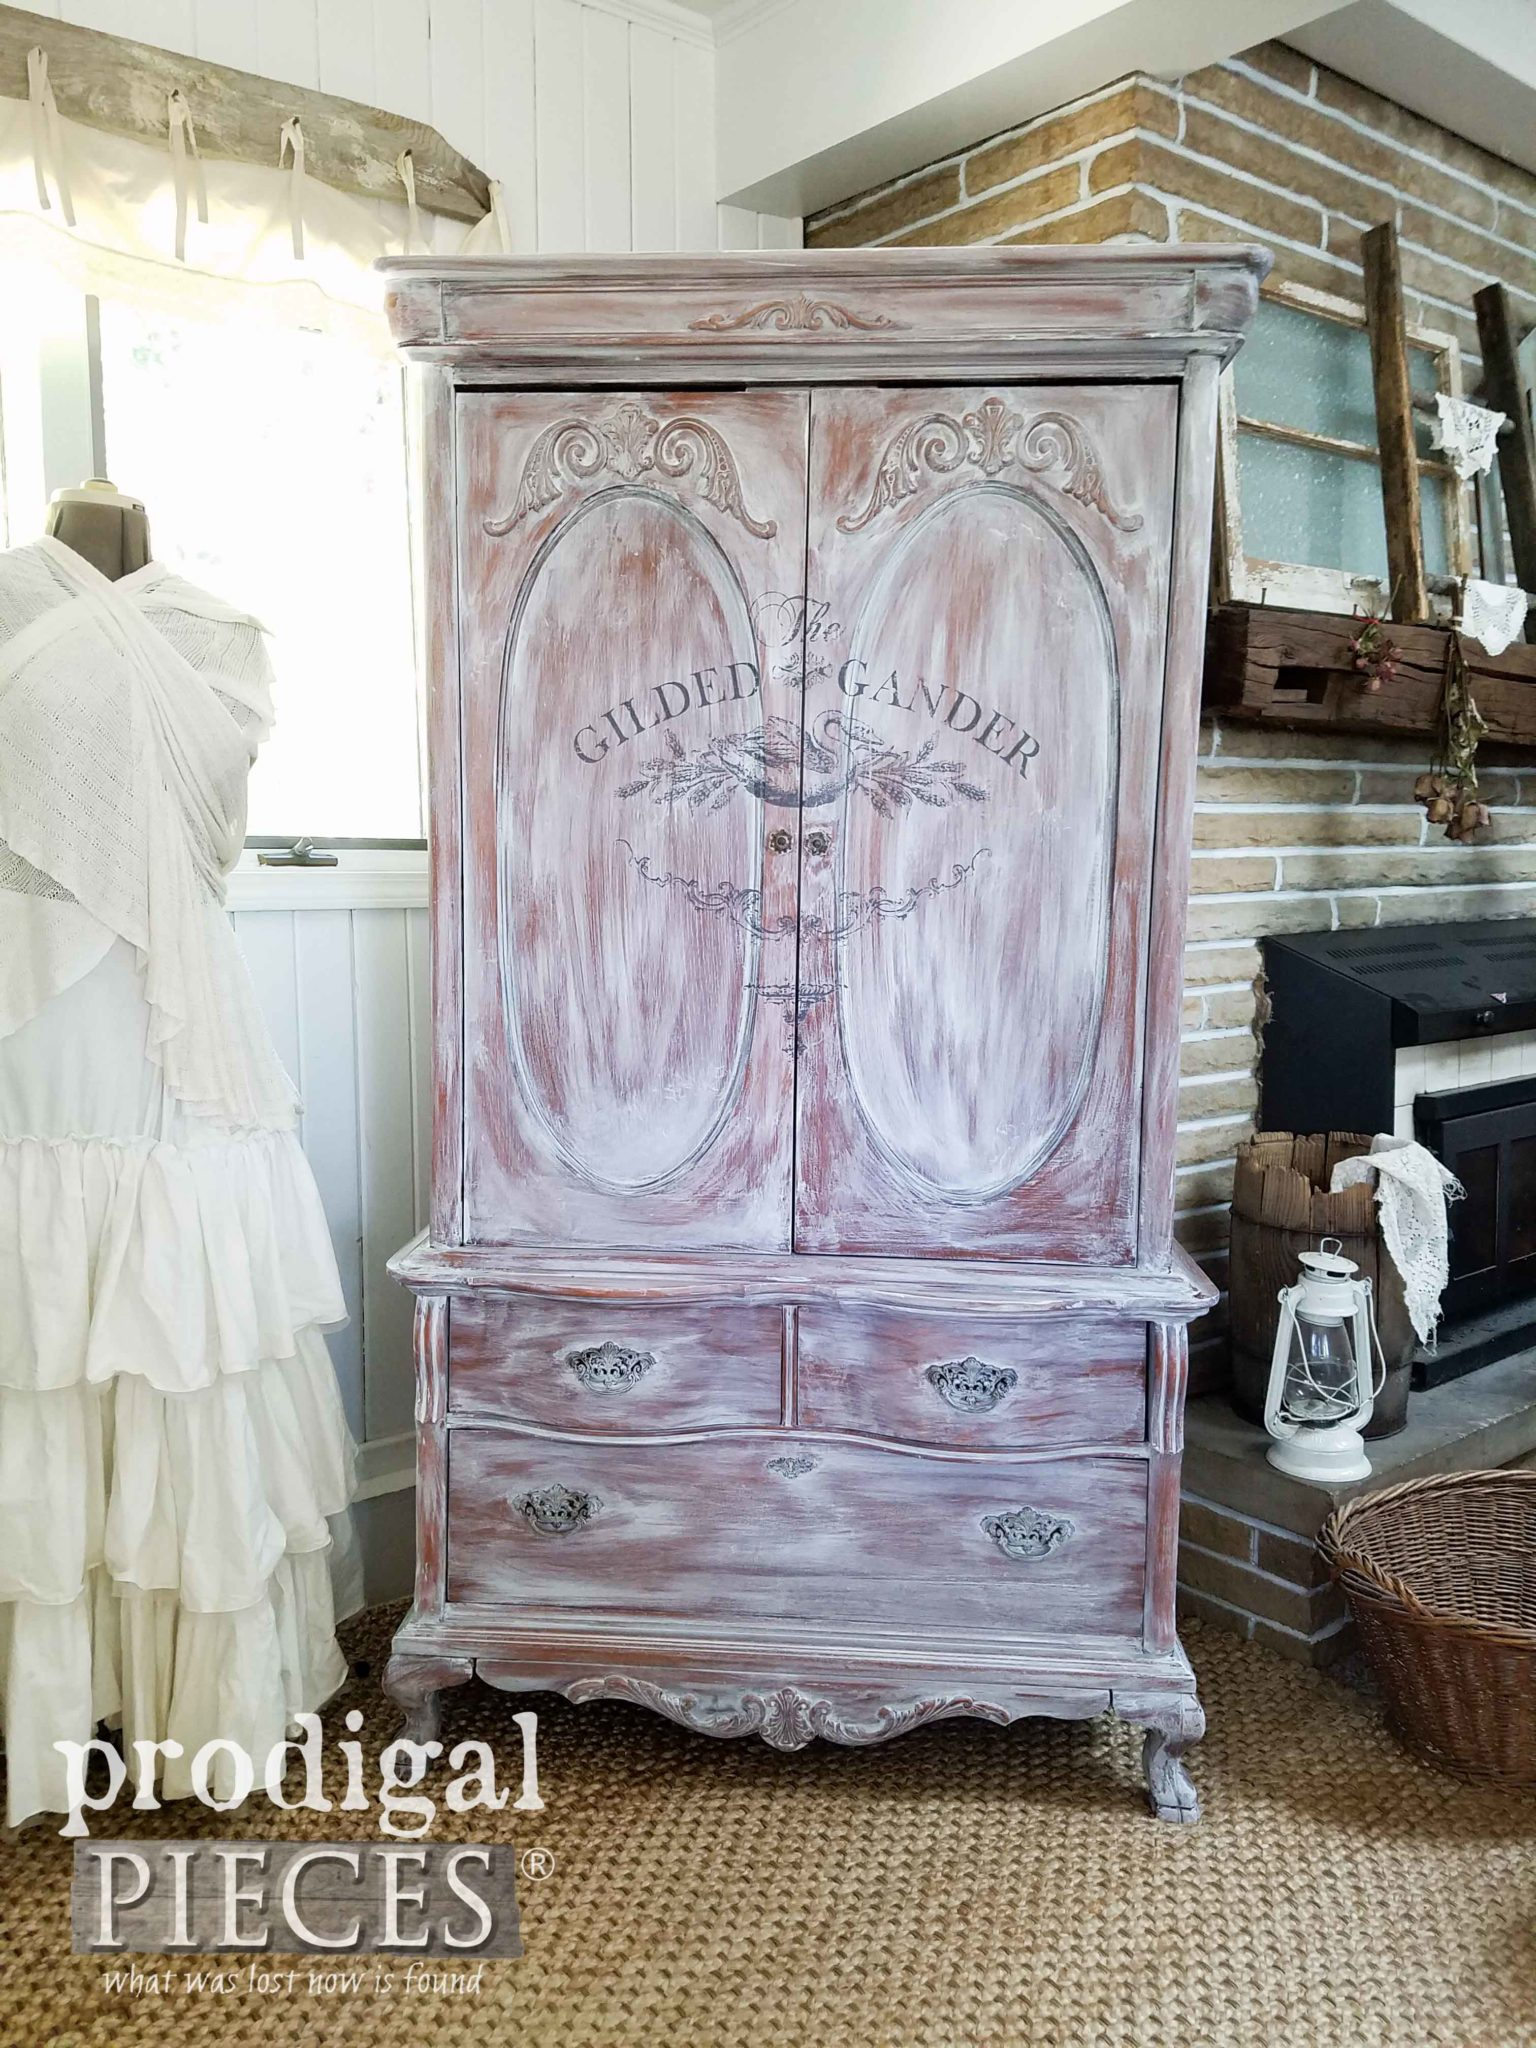 Look at this beautiful whitewashed French Country armoire by Prodigal Pieces. Get the DIY details at prodigalpieces.com